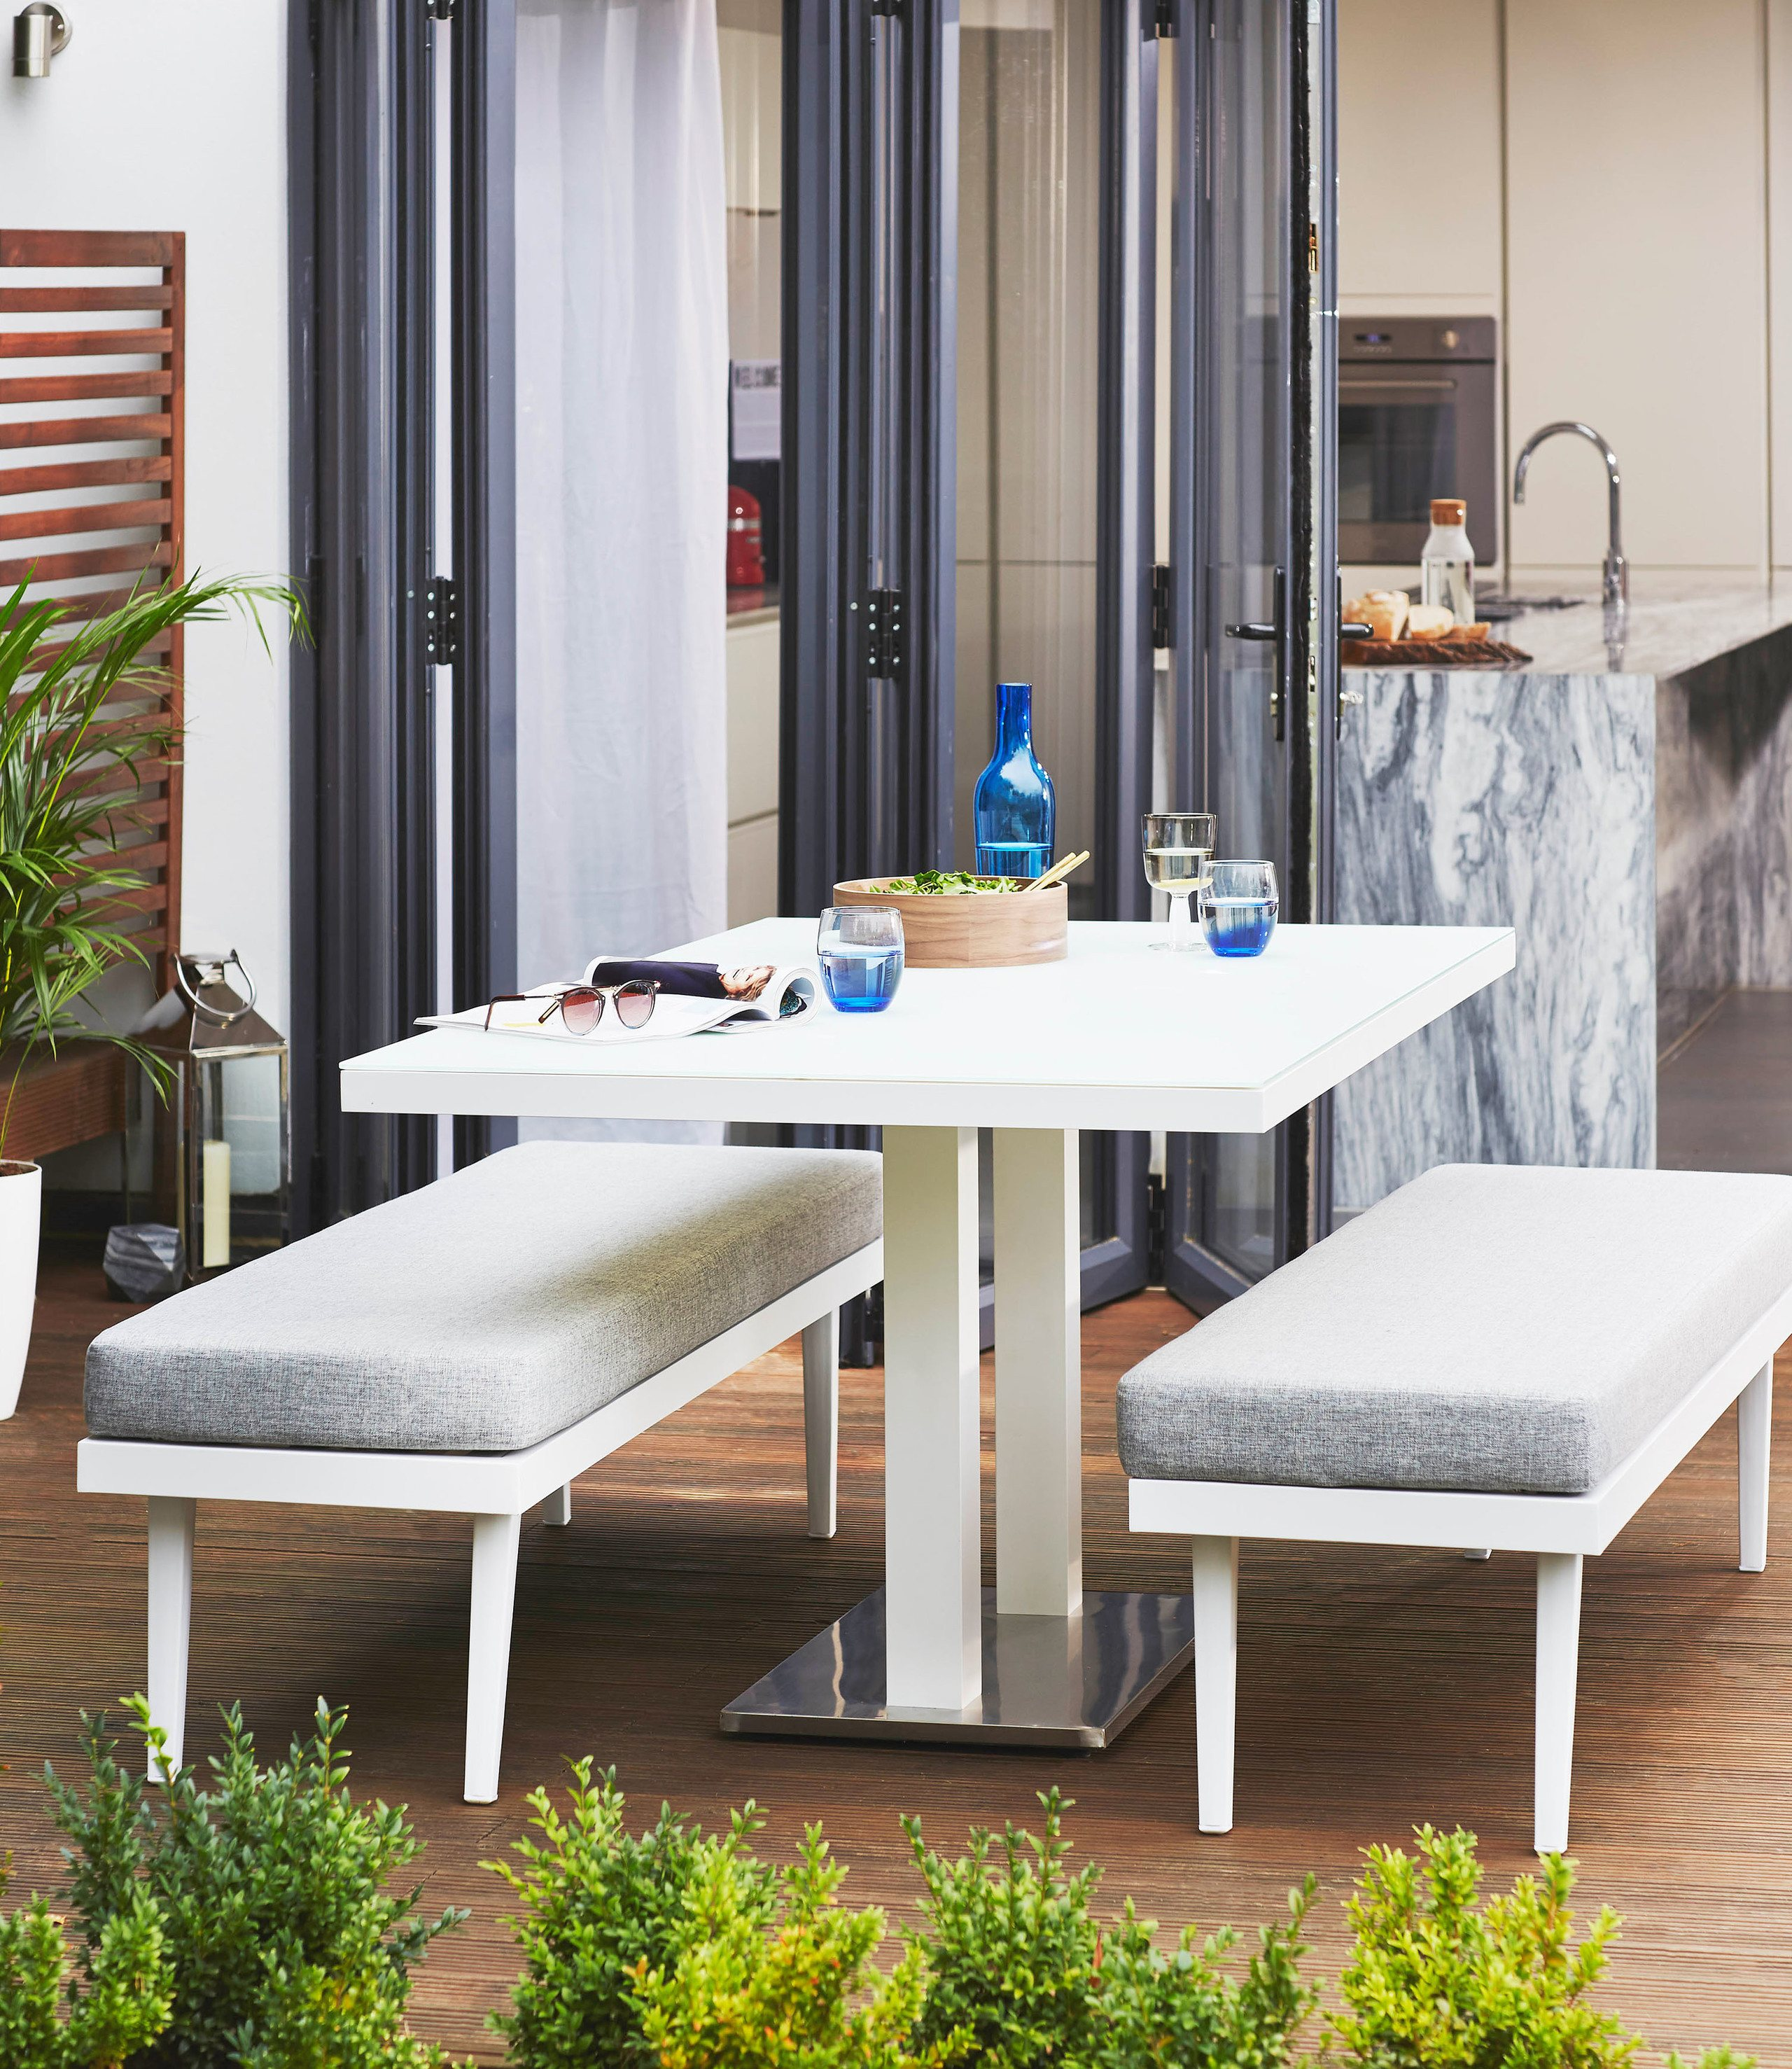 Palermo Pedestal Table and 3 Seater Backless Bench Set